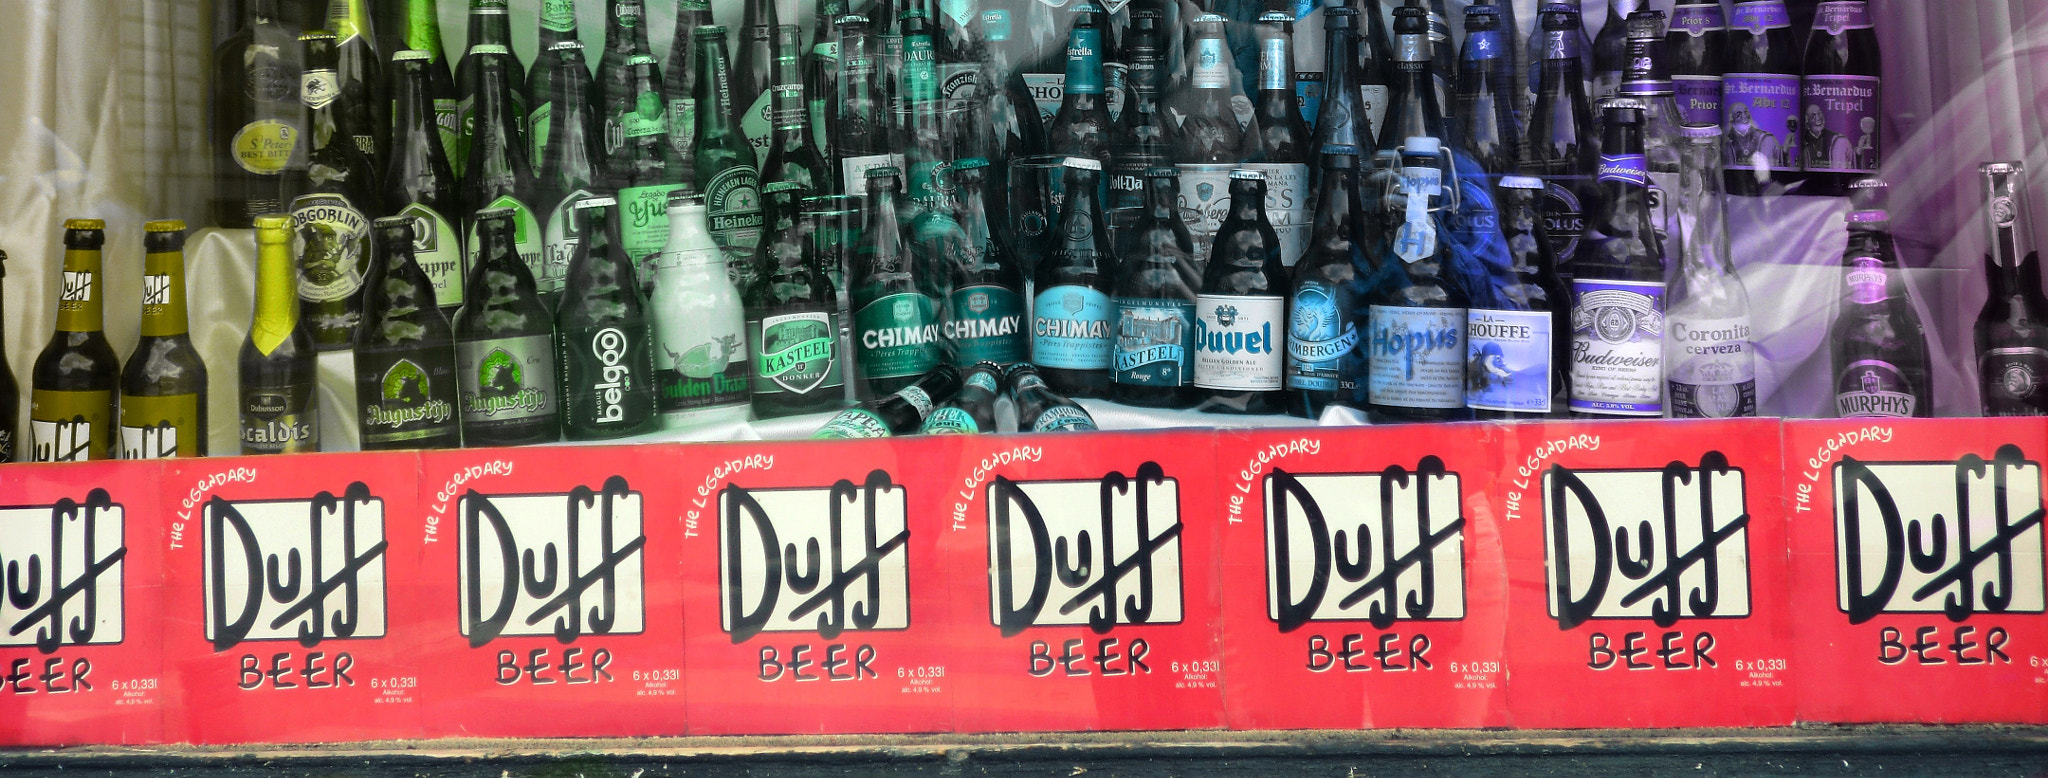 Photograph Duff beer by Noelia Martín on 500px